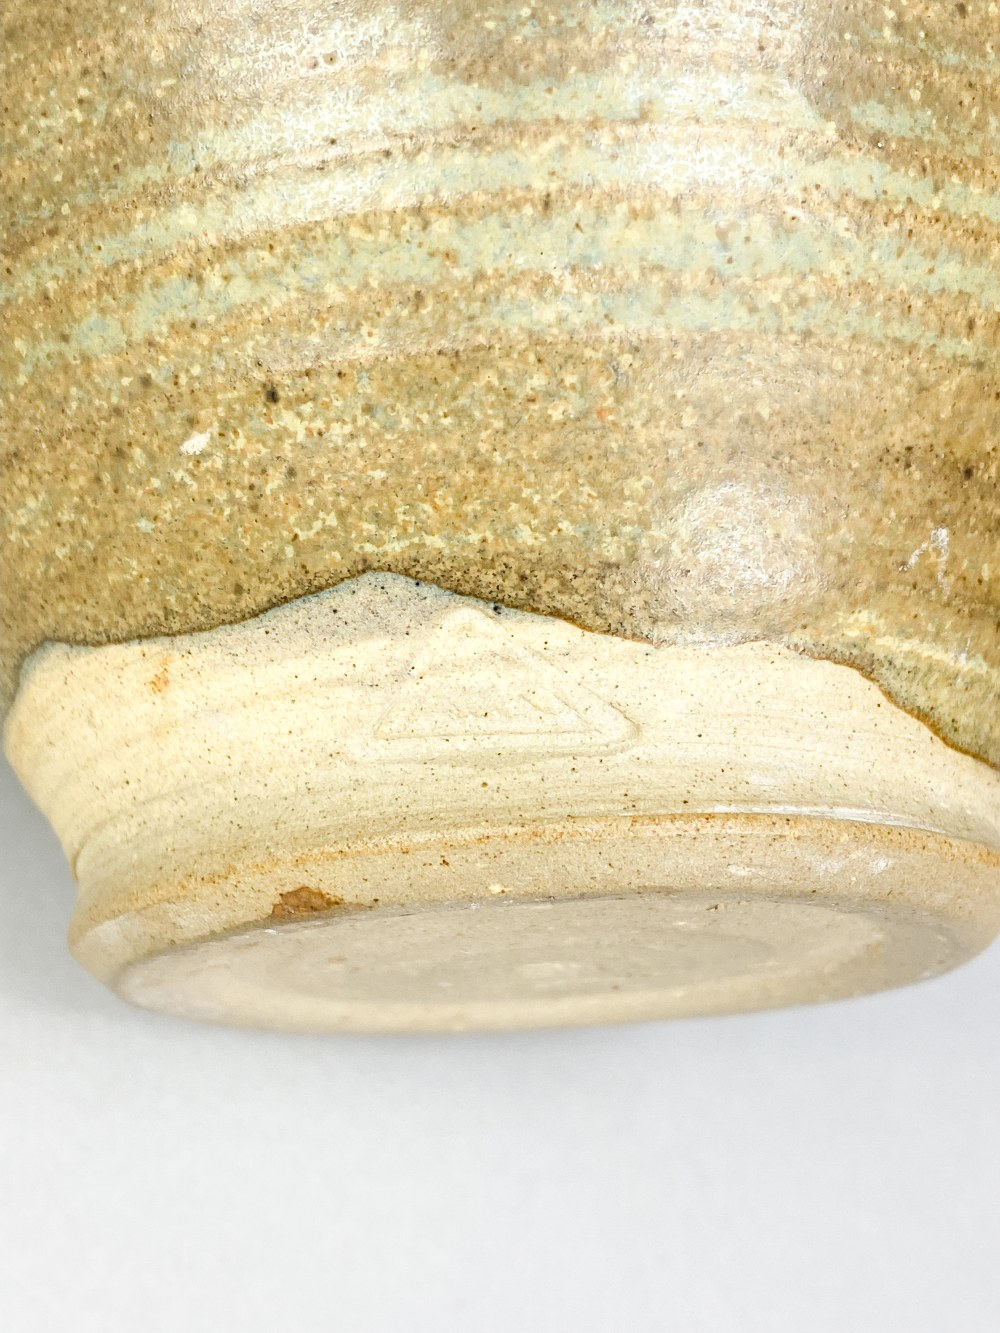 MARGARET REY (1911-2010); a stoneware vase with simple iron decoration on mottled brown and sage - Image 5 of 5